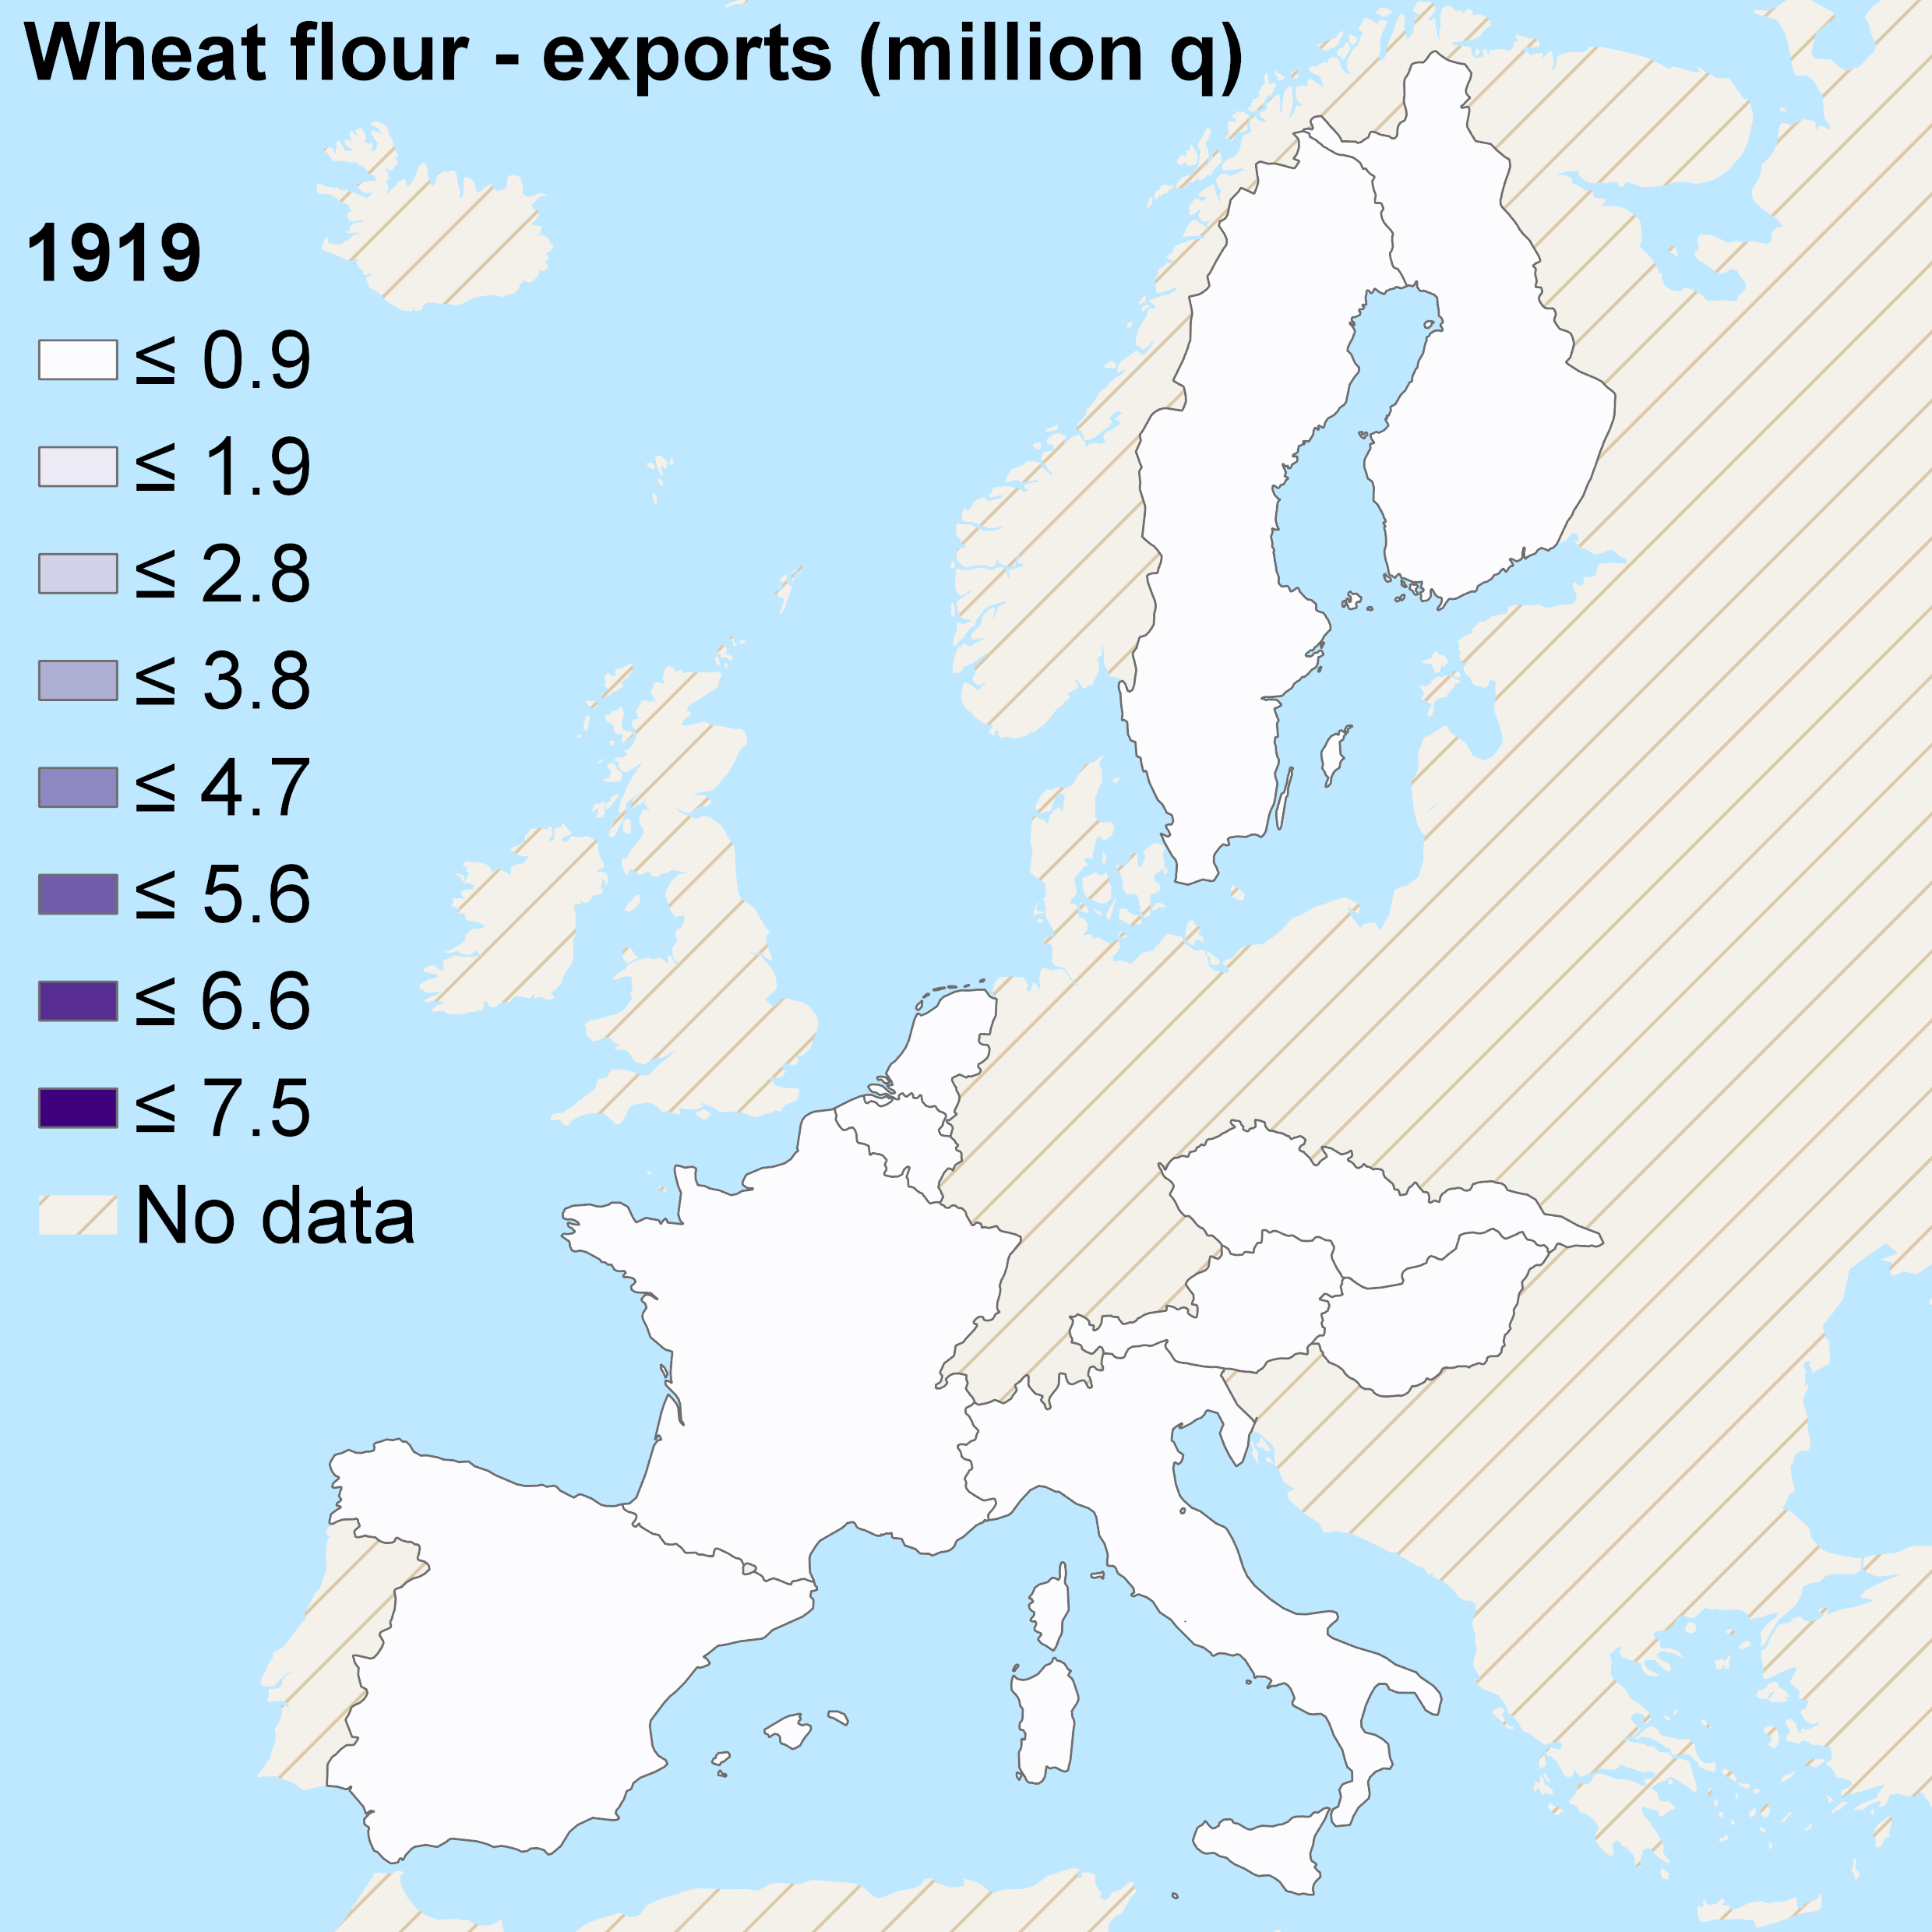 wheat-flour-exports-1919-v2